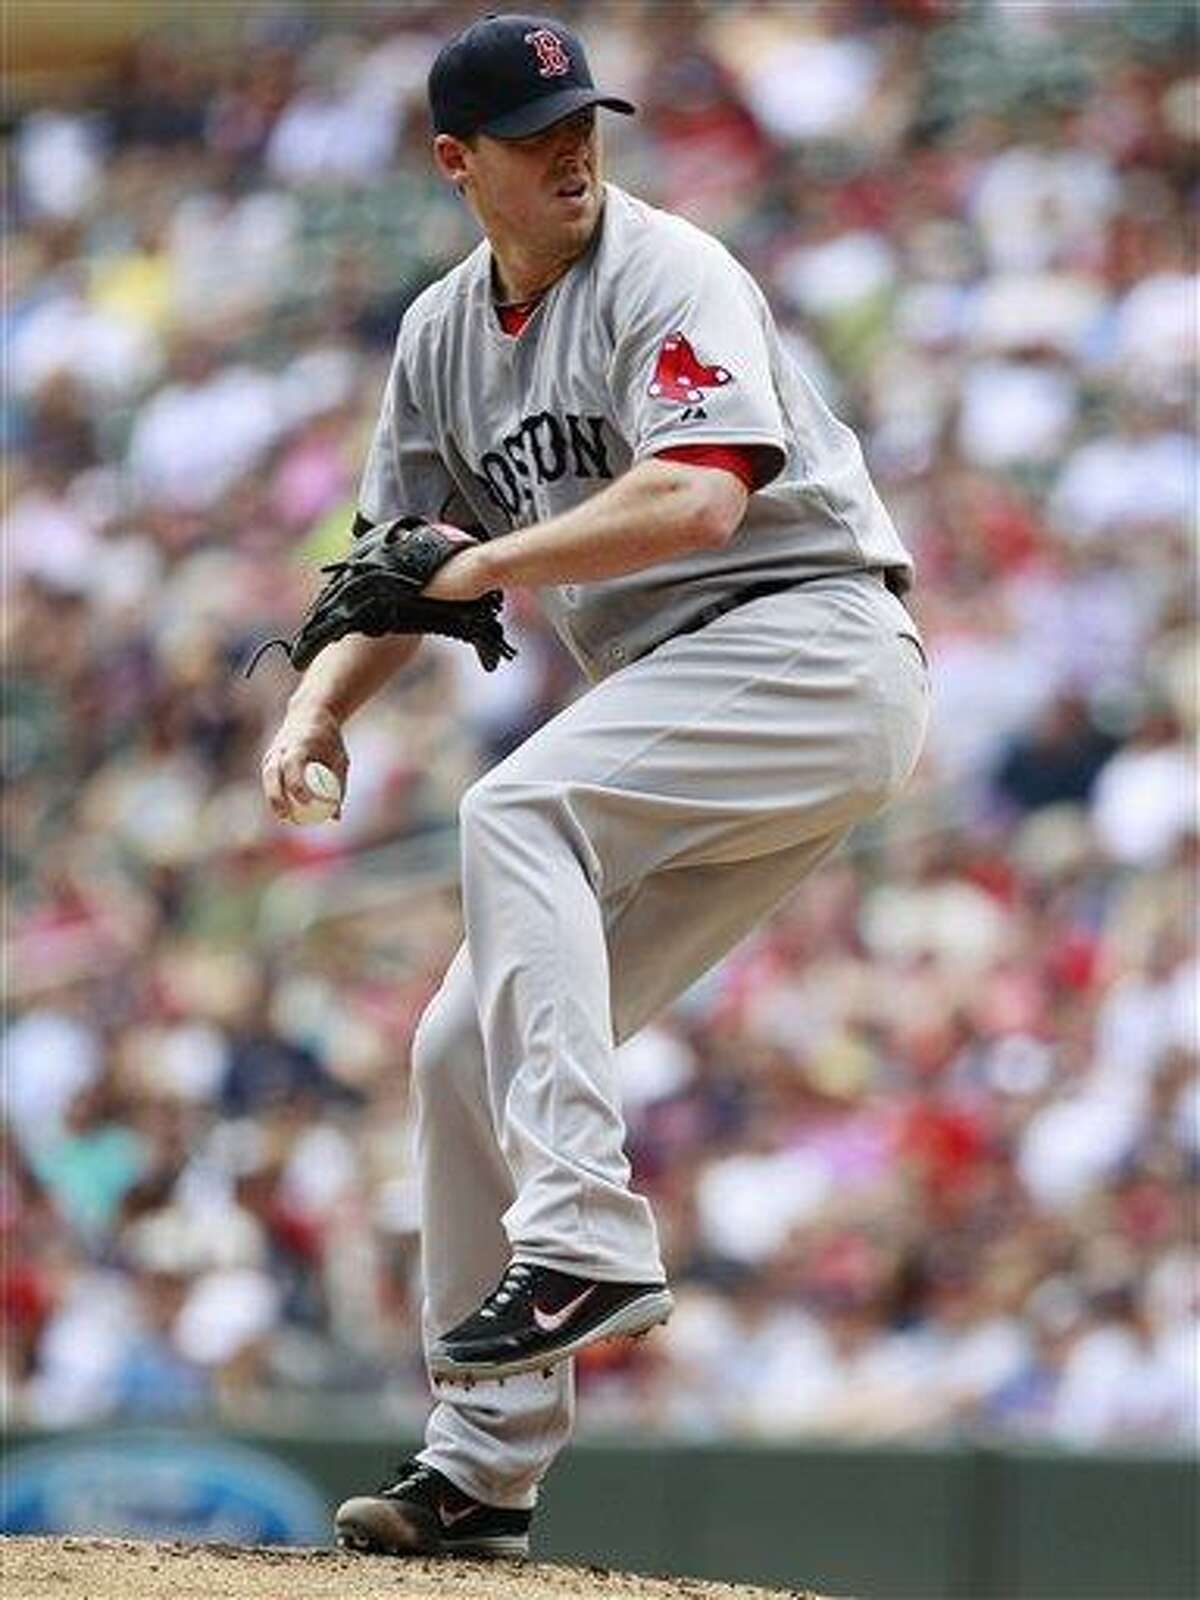 Boston Red Sox starting pitcher John Lackey (41) throws against the Minnesota Twins during the inning inning of a baseball game, Sunday, May 19, 2013, in Minneapolis. (AP Photo/Genevieve Ross)